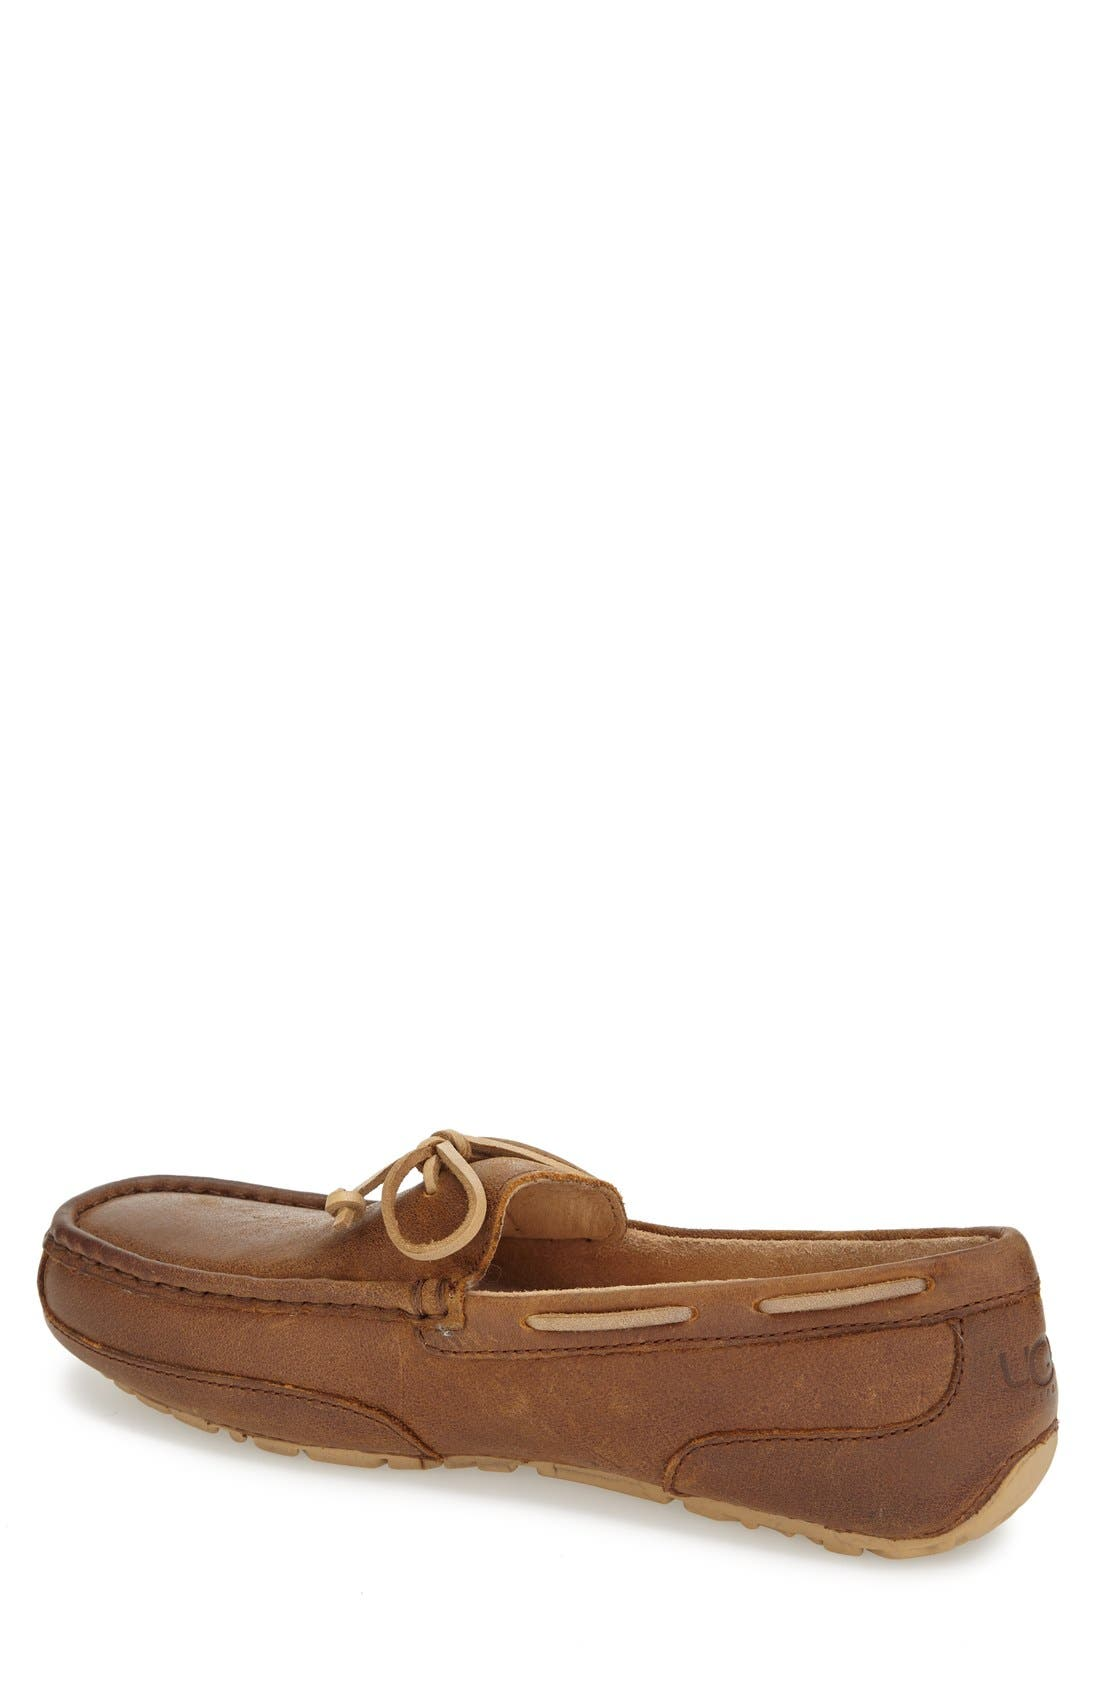 'Chester' Driving Loafer,                             Alternate thumbnail 15, color,